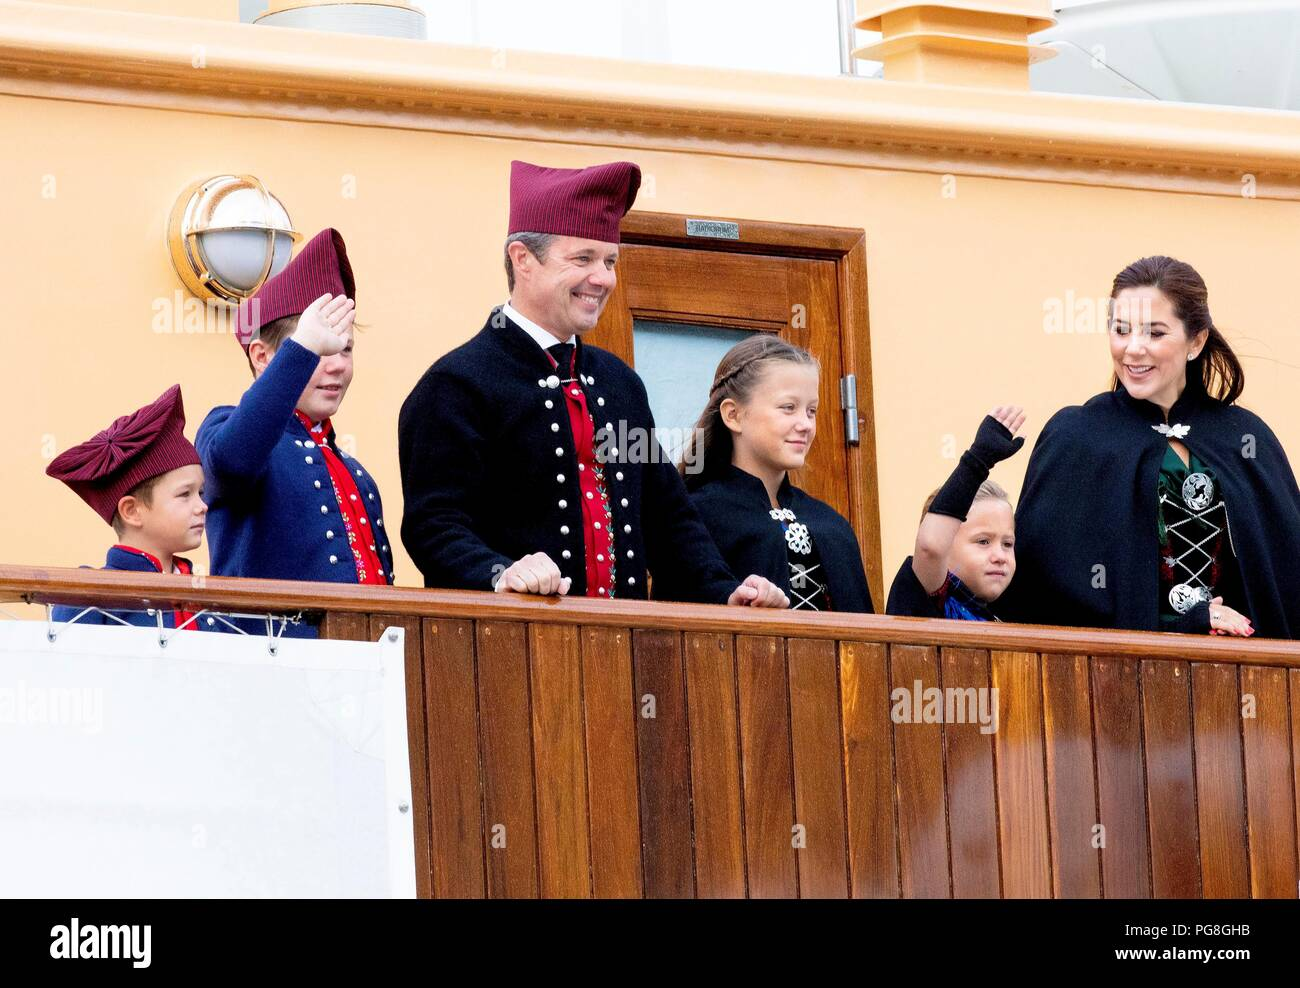 Faroe Islands. 24th Aug, 2018. Crown Prince Frederik, Crown Princess Mary, Prince Christian, Princess Isabella, Prince Vincent and Princess Josehpine of Denmark arrive with the The Royal Ship, HDMY Dannebrog at the harbour of Klaksv?k, on August 24, 2018, on the 2nd of the 4 days visit to the Faroe Islands Photo : Albert Nieboer/ Netherlands OUT/Point de Vue OUT | Credit: dpa picture alliance/Alamy Live News - Stock Image